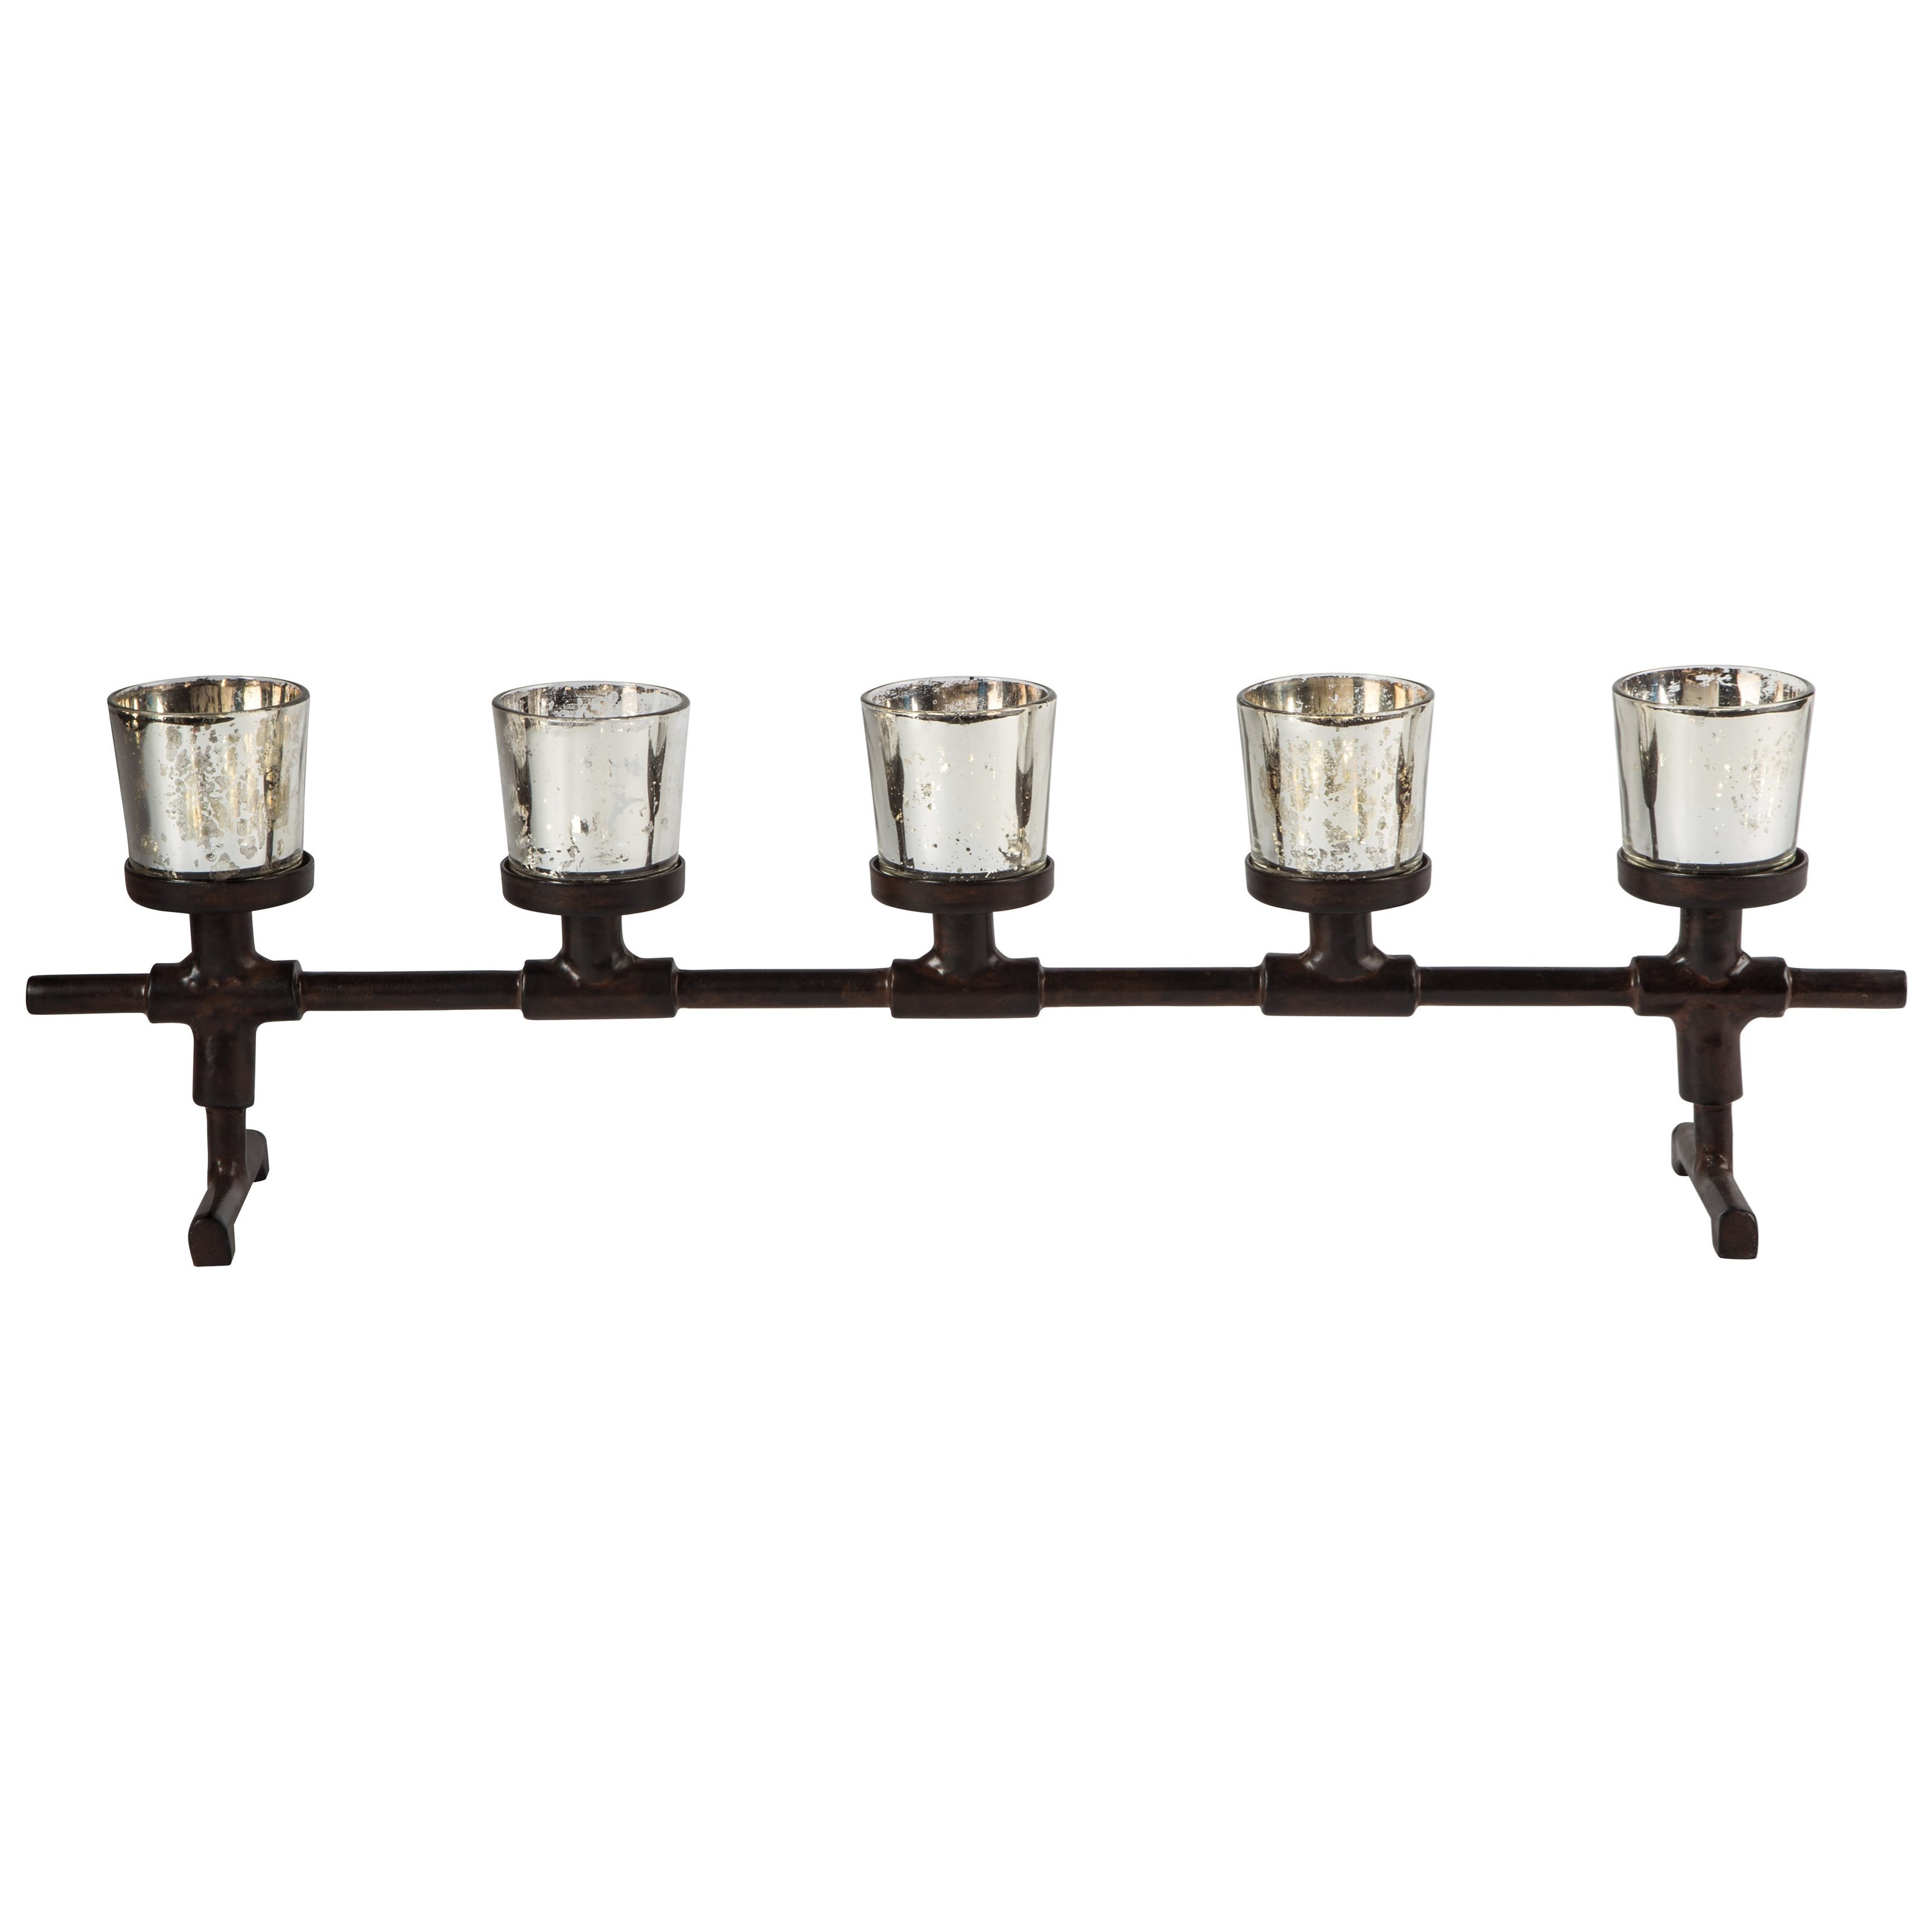 Signature Design by Ashley Accents Diara Antique Gray Candle Holder - Item Number: A2000283C